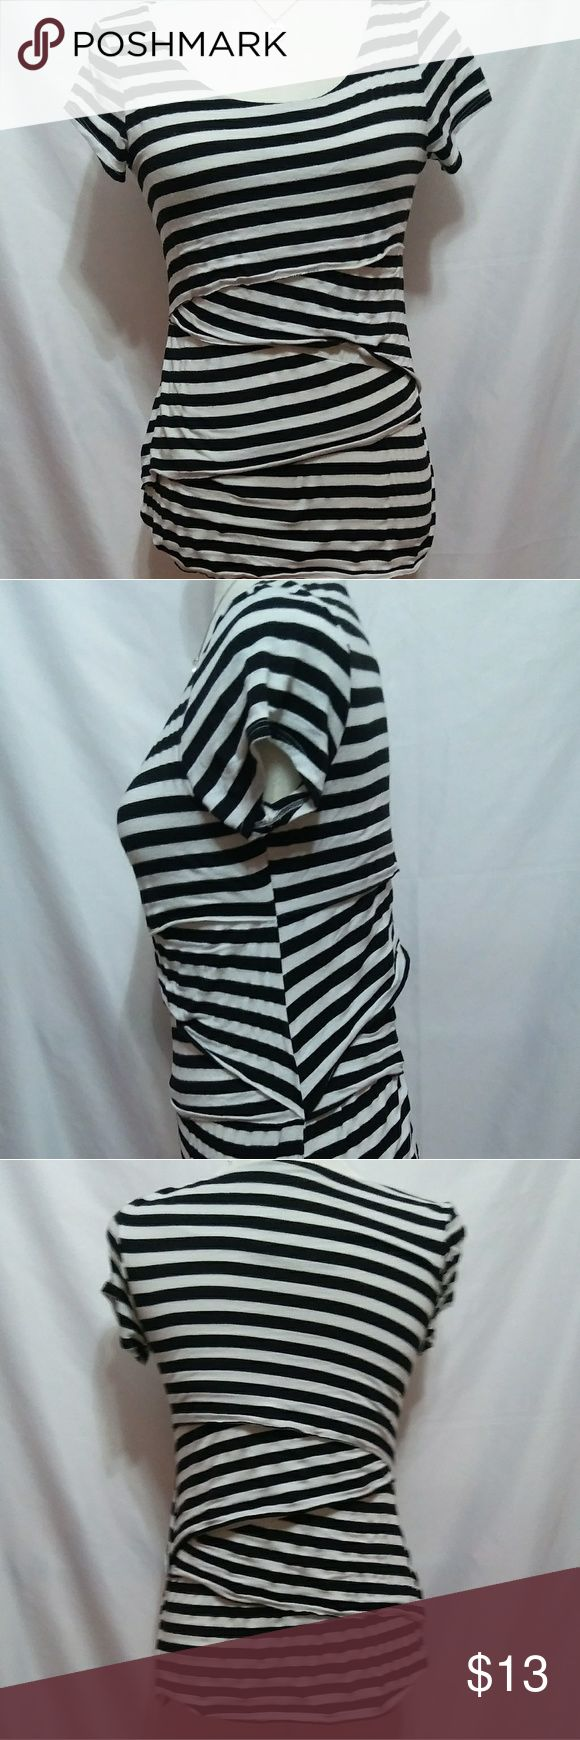 Maurices striped women's top.  Size medium. Maurice's black and white striped women's top. Size medium. Measurements to follow. Links from color to waste in the back is 23 in. Sleeve length is 5 in. All measurements taken from the back. Maurices Tops Tees - Short Sleeve